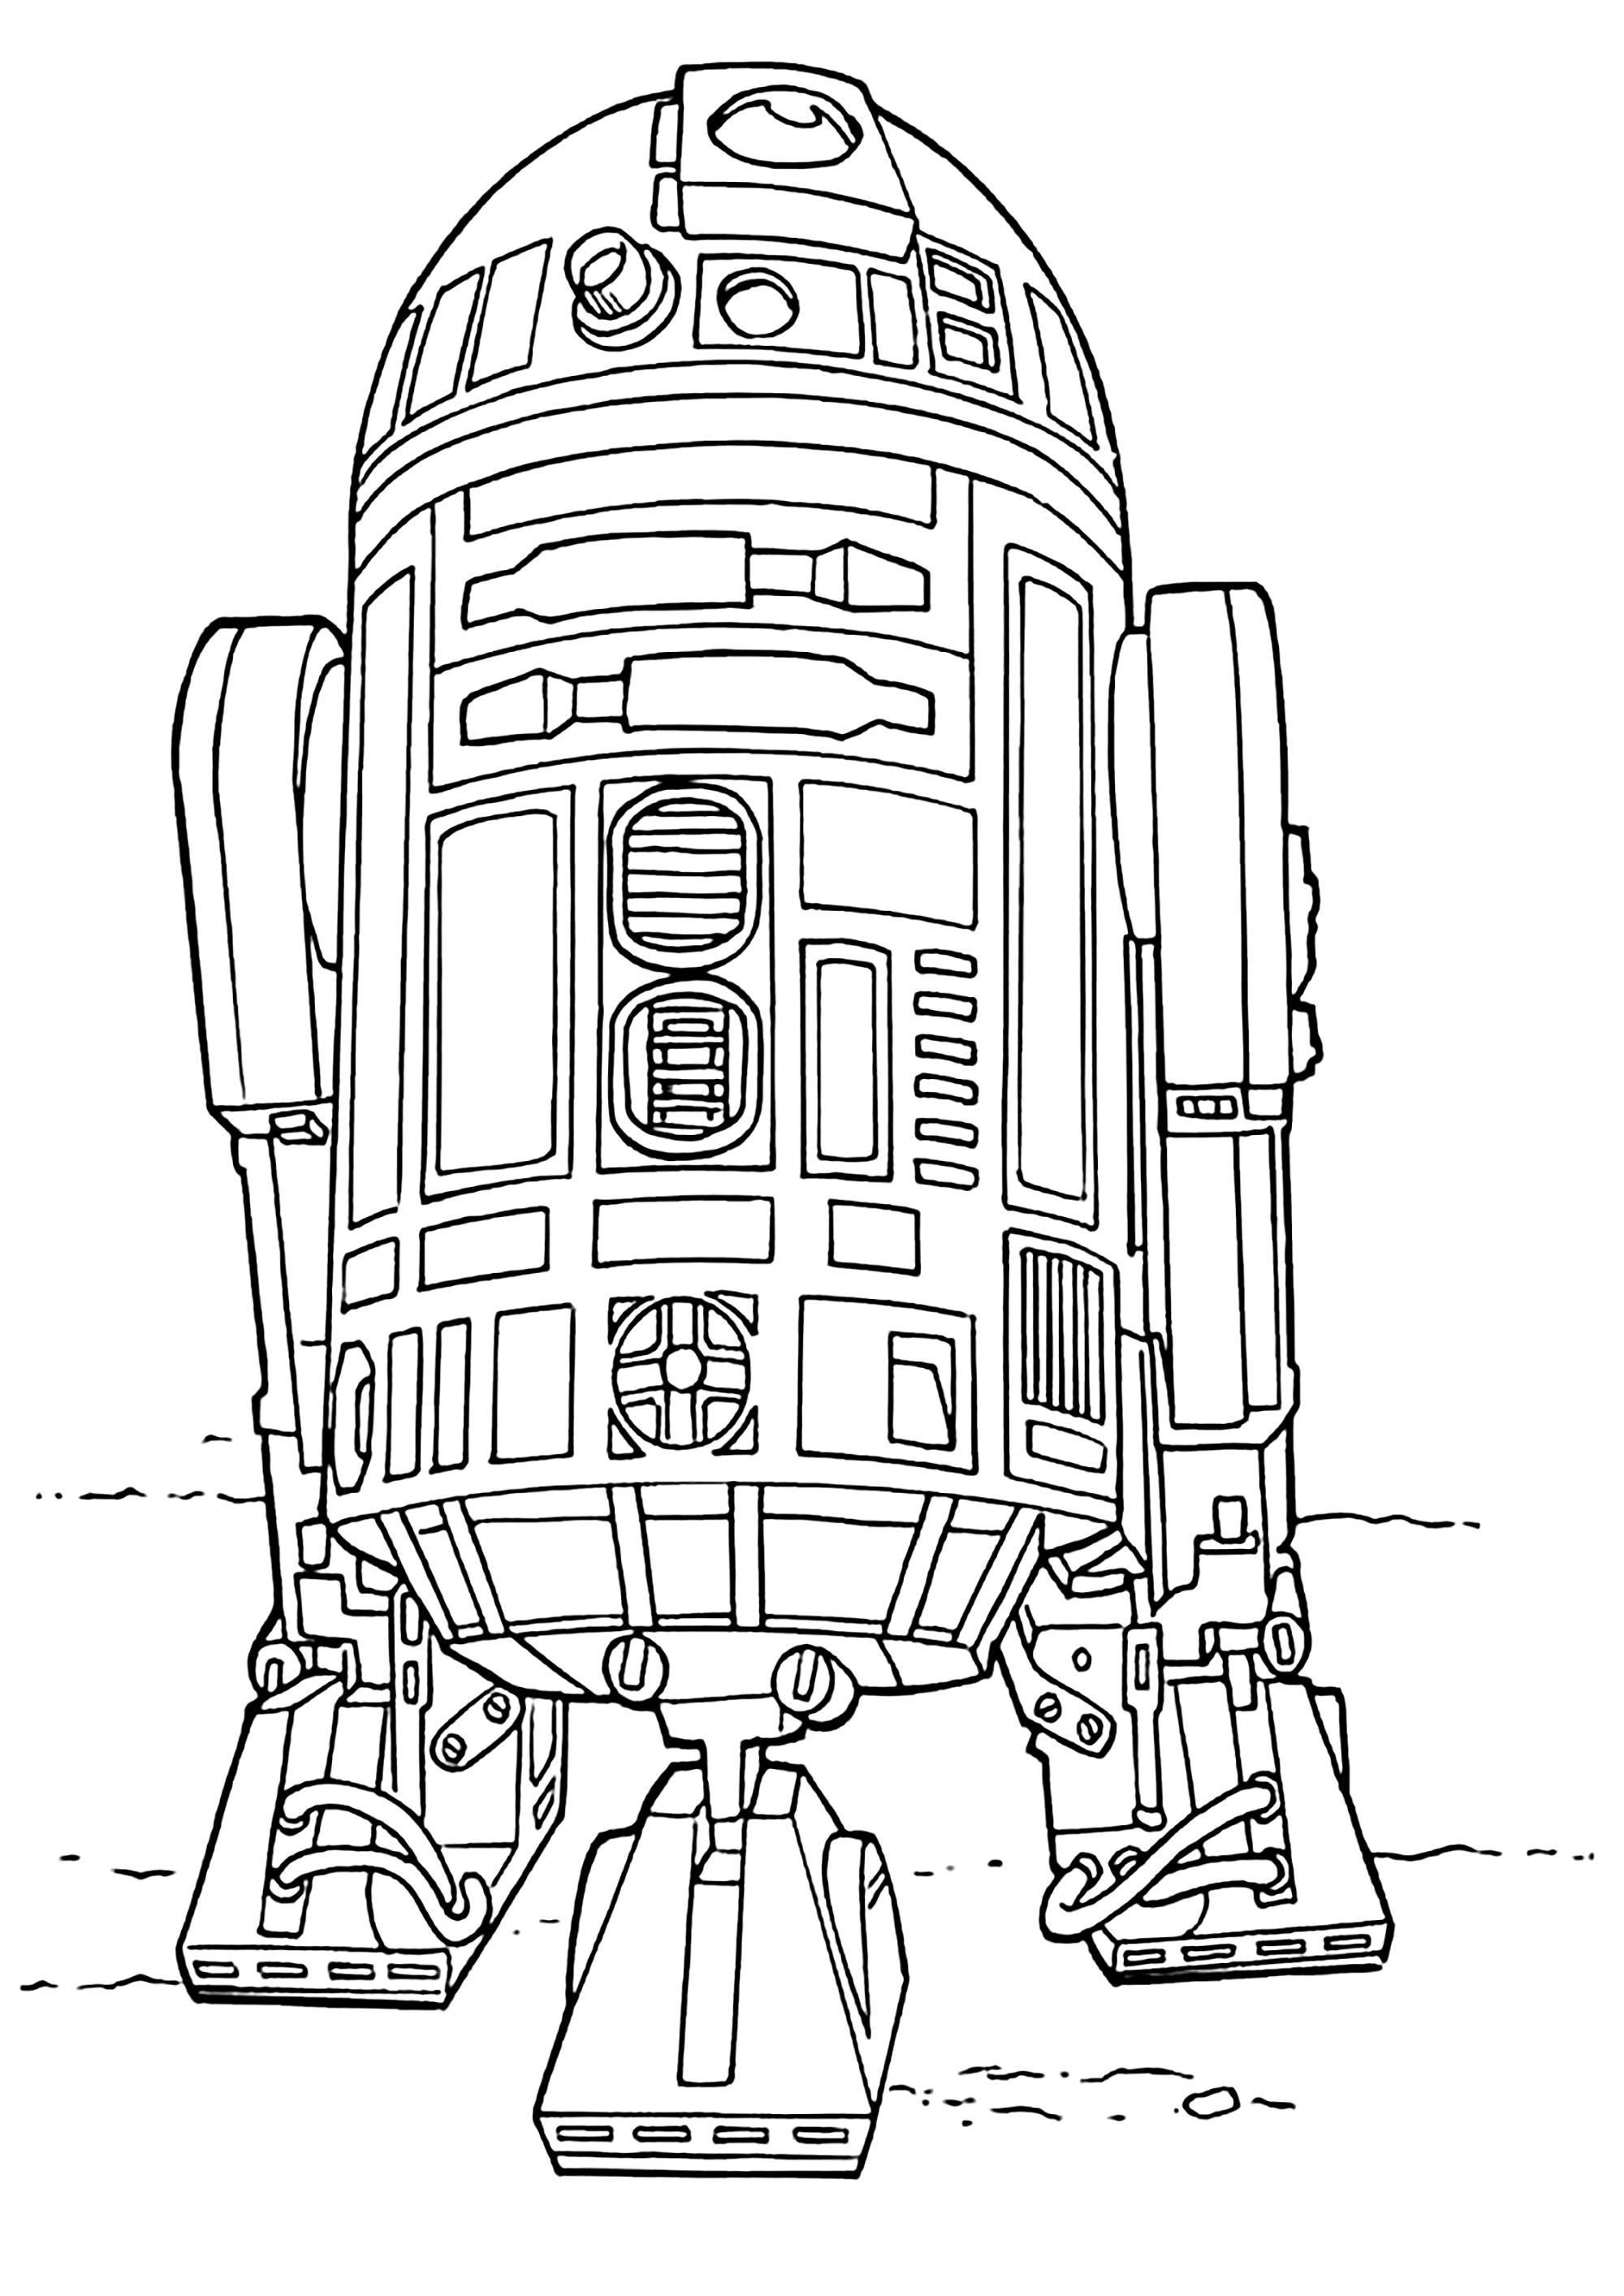 clone wars coloring 10 free star wars coloring pages chewbacca kylo ren coloring clone wars